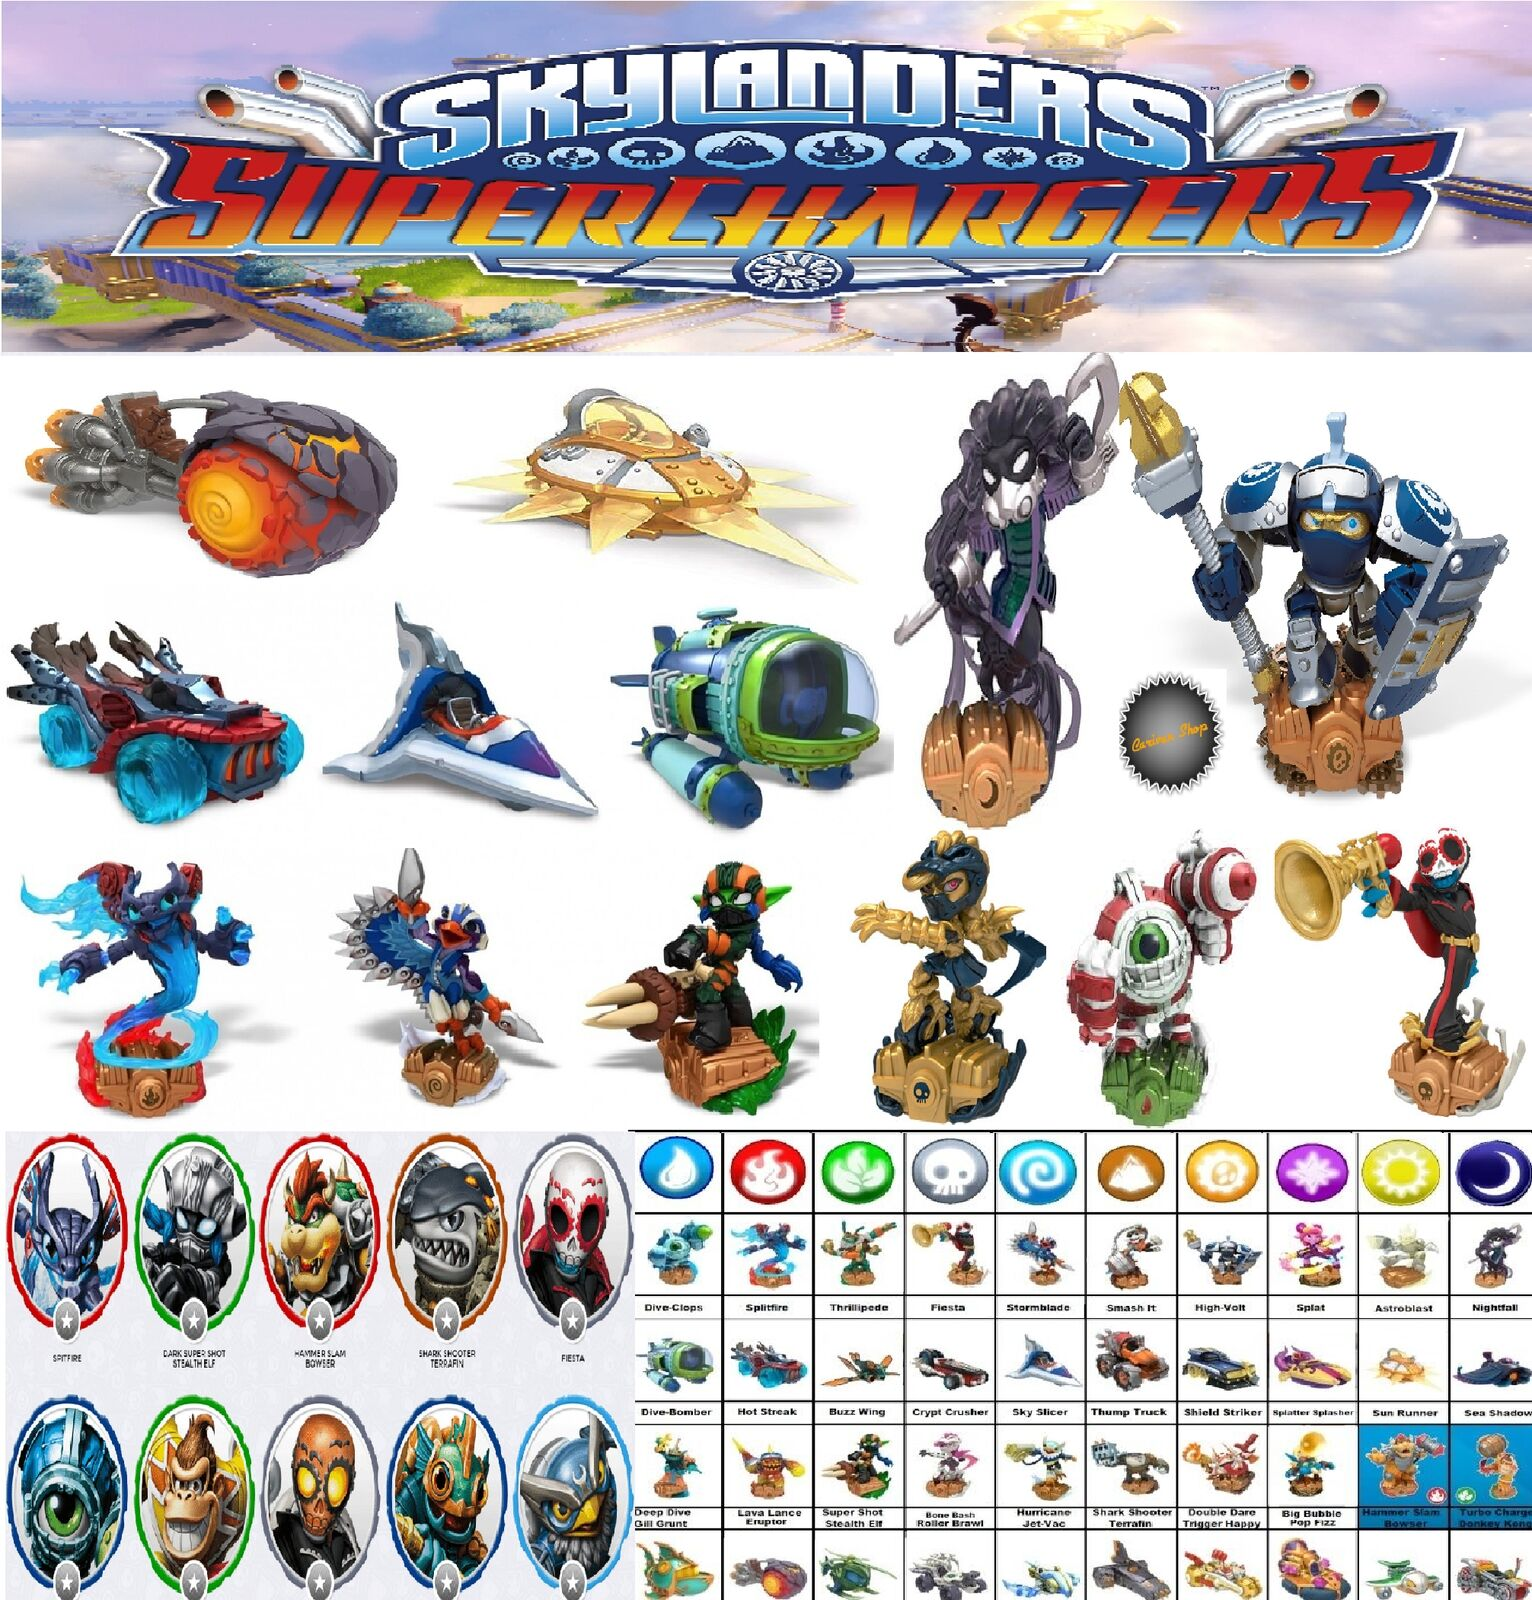 SKYLANDERS SUPERCHARGERS SUPER CHARGERS AU CHOIX CHOICE COLLECT THEM ALL